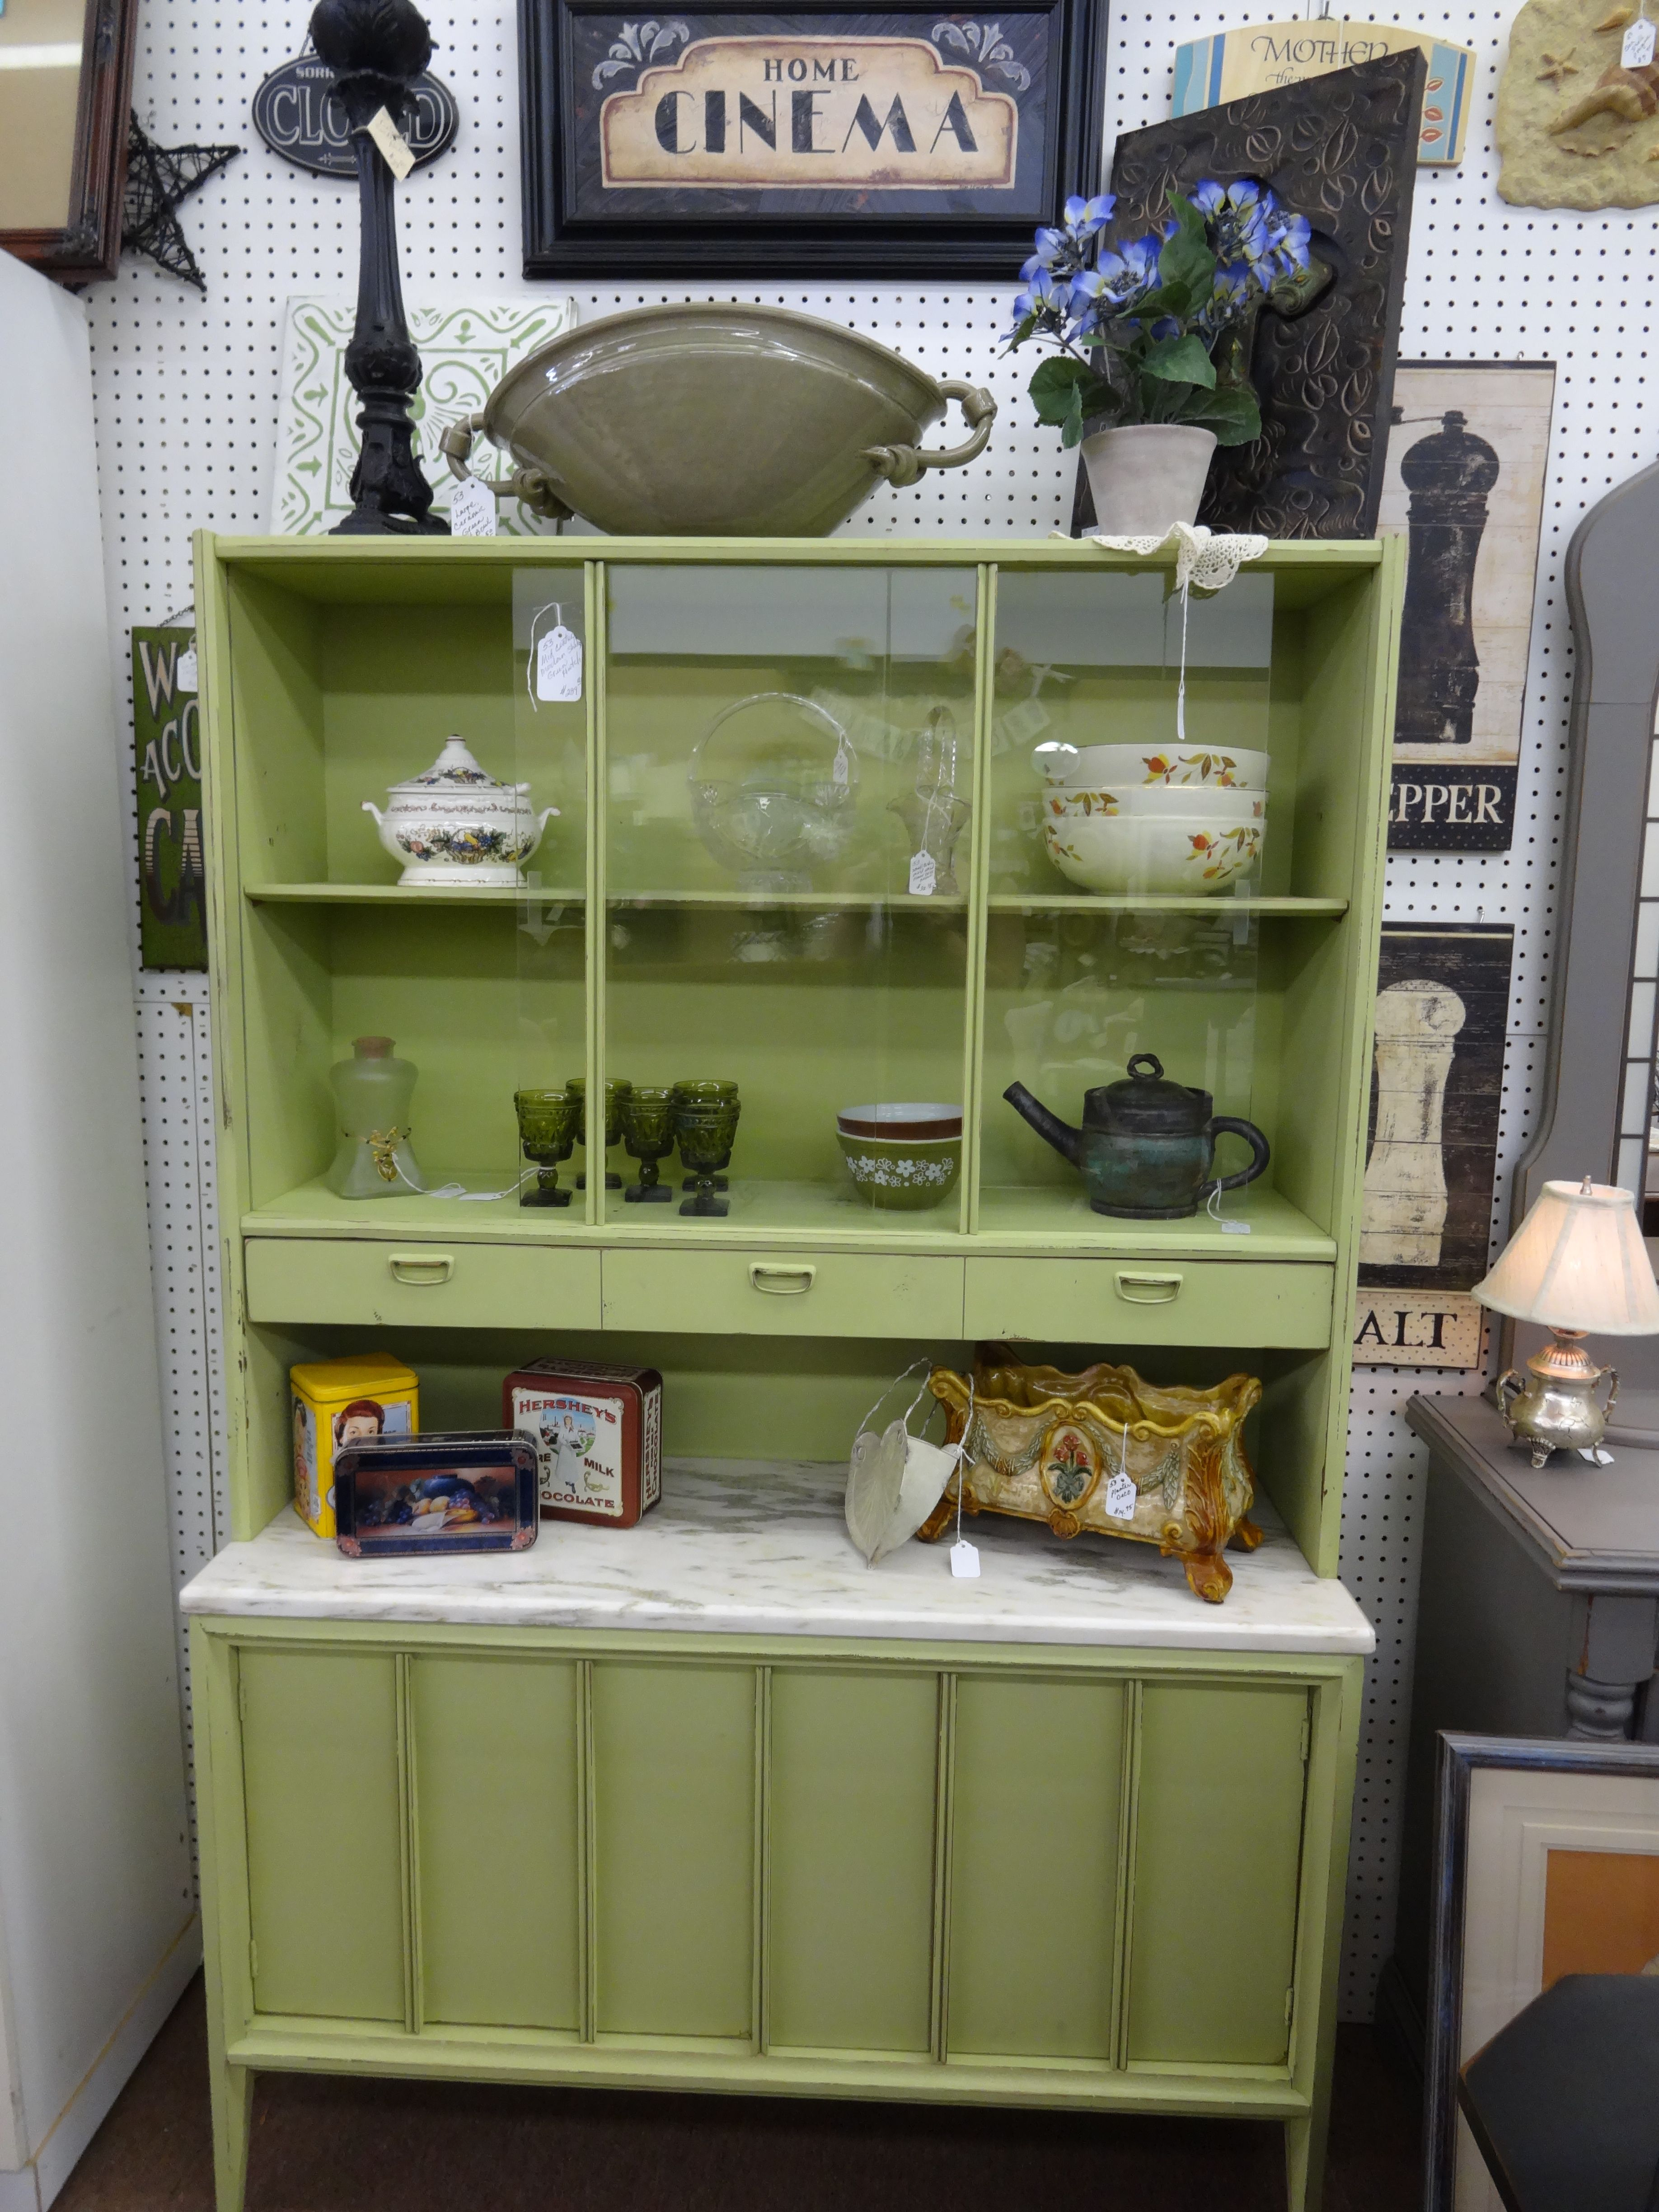 SOLD This Mid Century Modern Hutch with Marble Slab has been